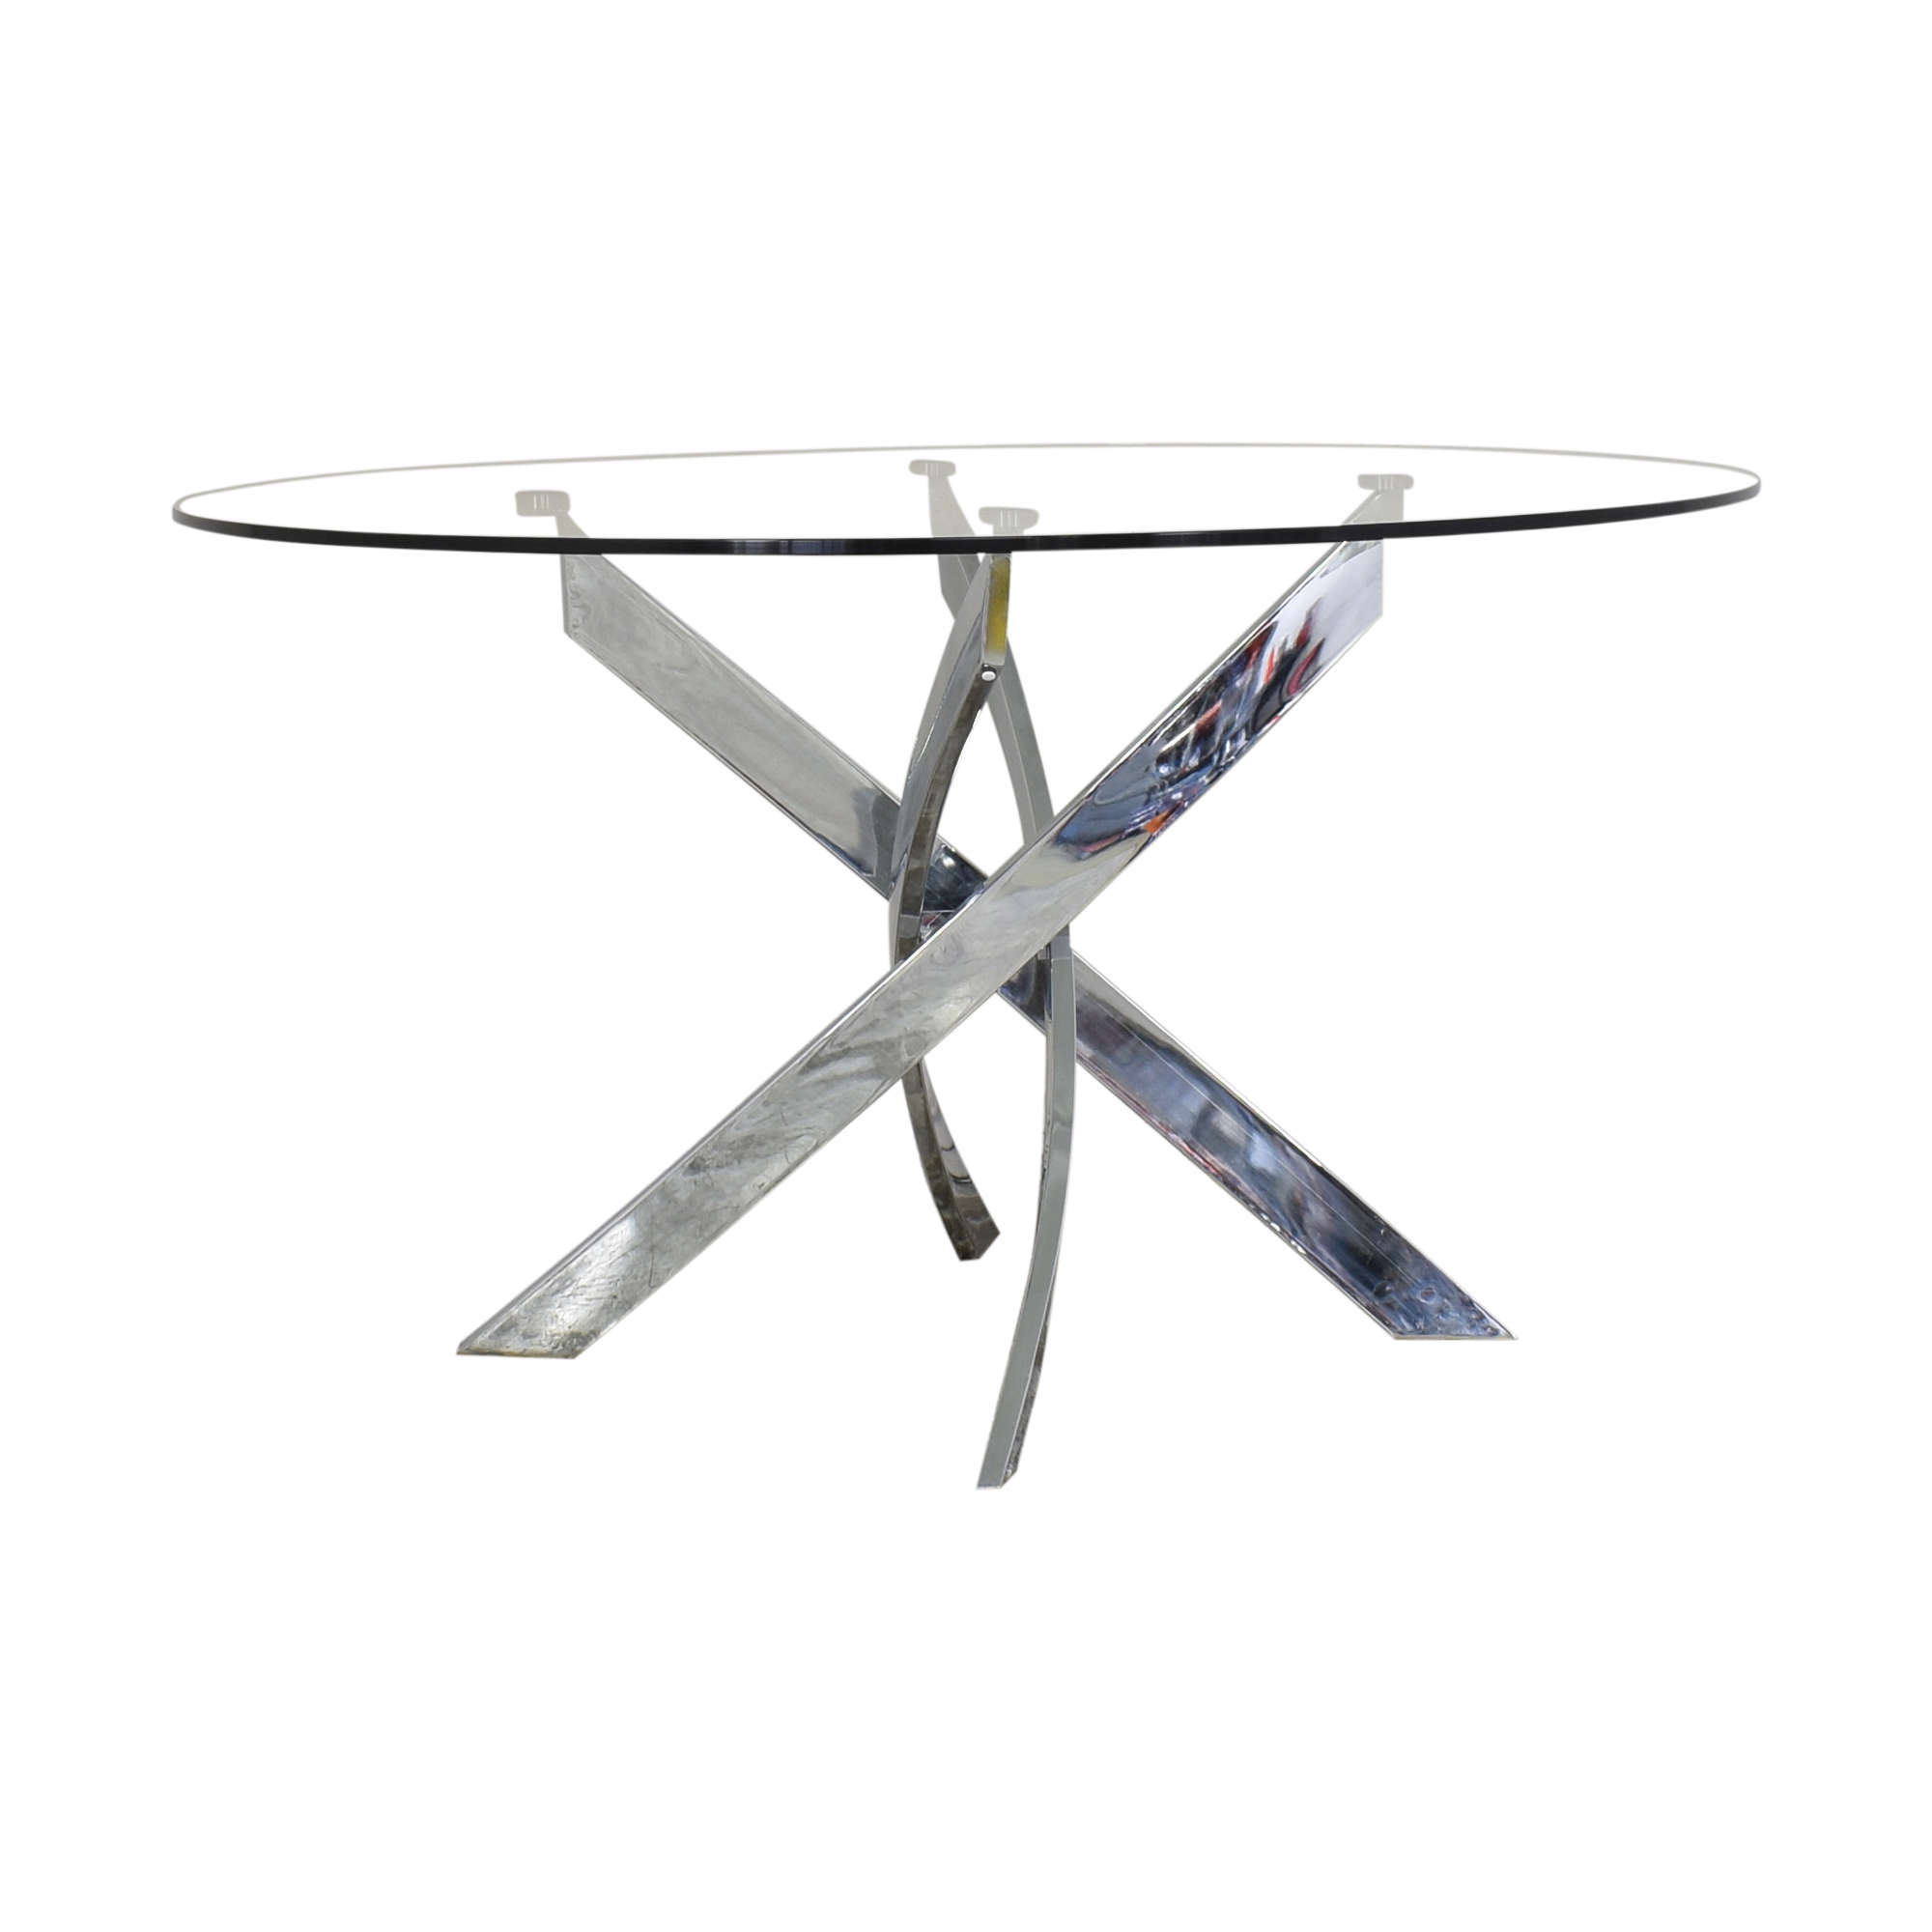 Inmod Inmod Modrest Pyrite Modern Round Dining Table coupon